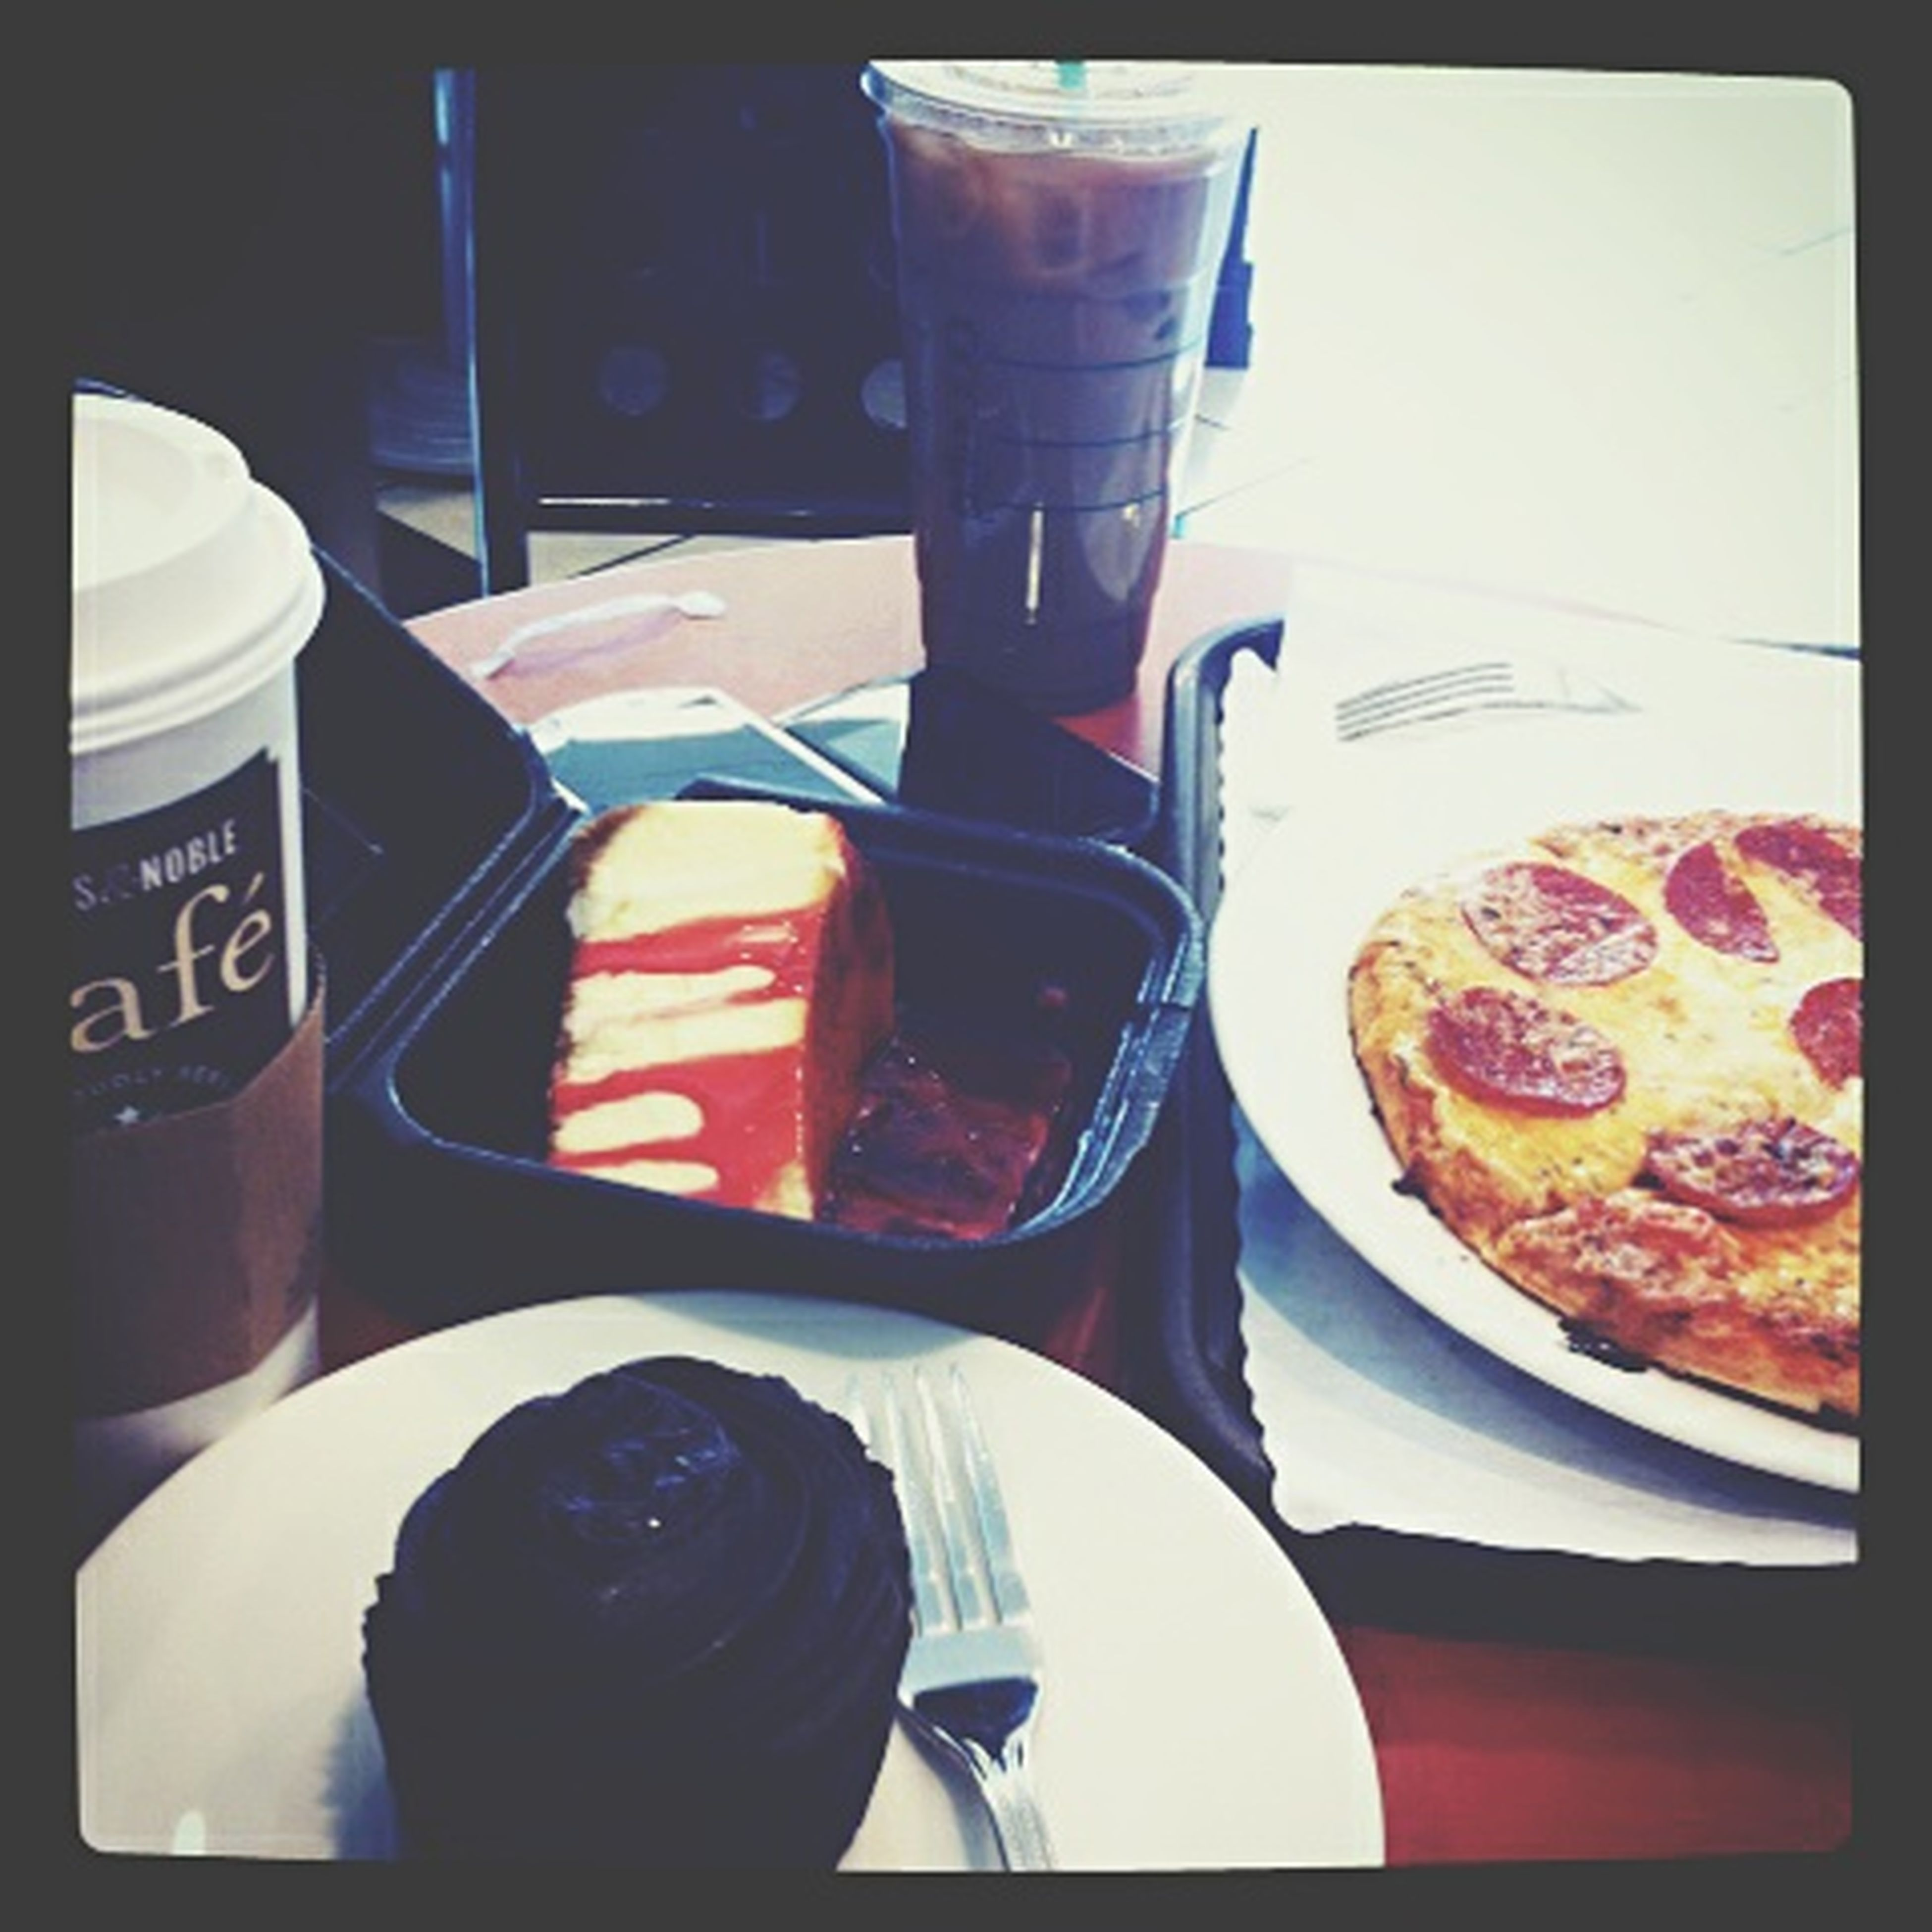 Foodphotography Pizza <3 Barnesandnoble Cupcake Went There To Eat Starbucks ❤